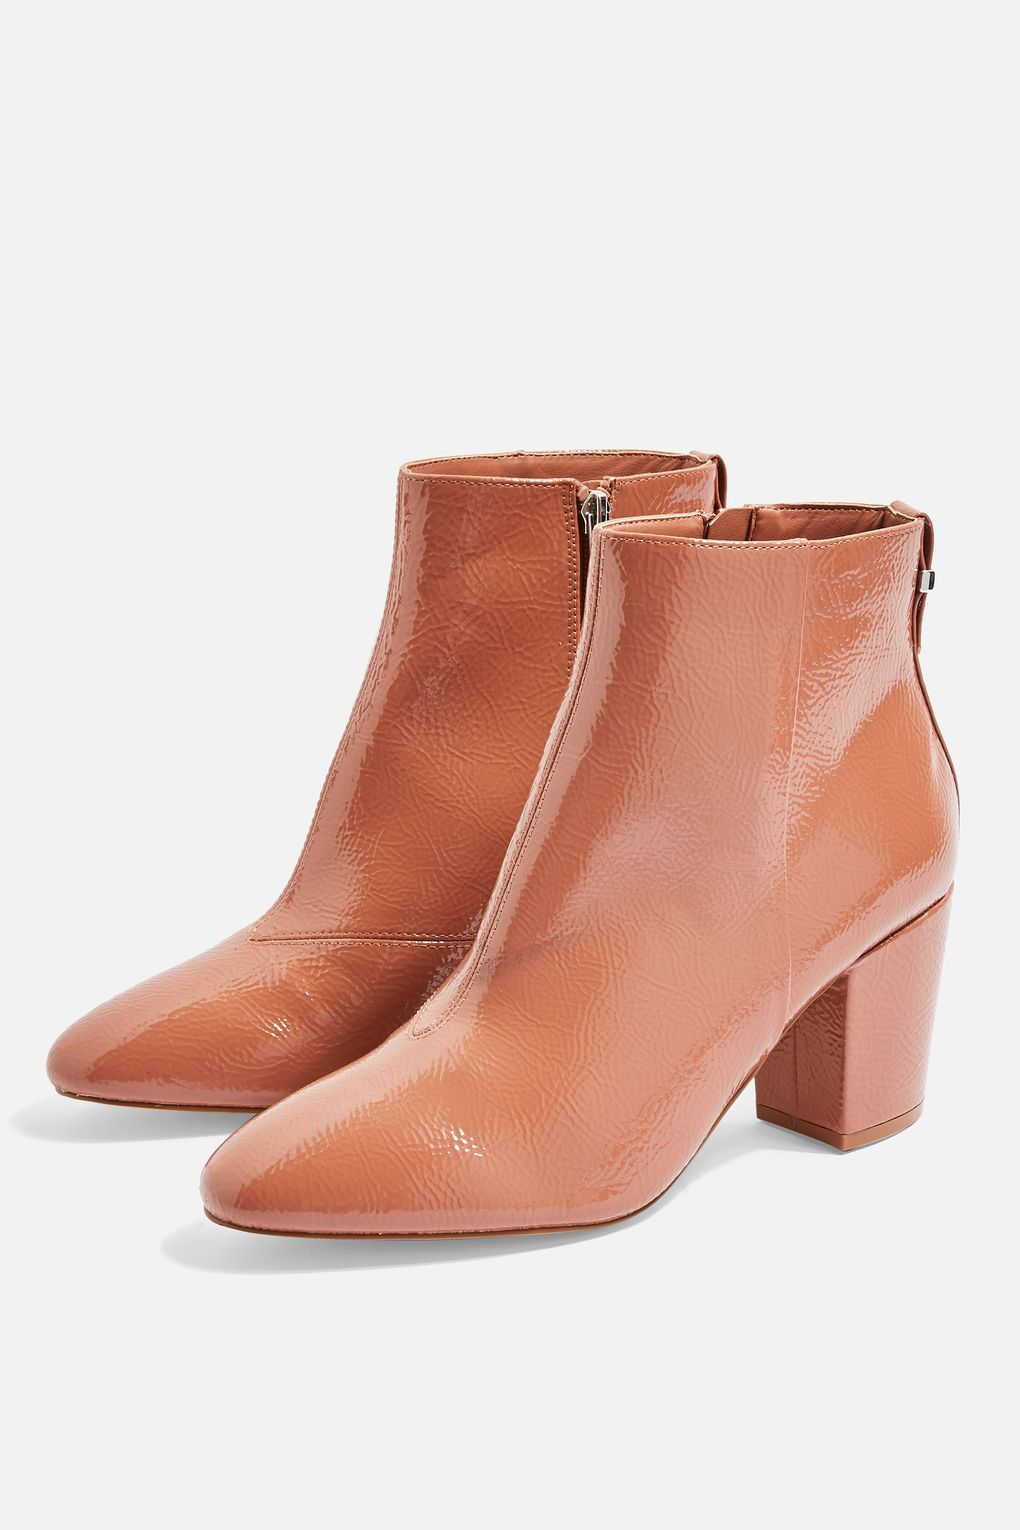 63dc96d63603 BROOKLYN Block Boots | August 2018 | Boots, Shoes, Shoe boots